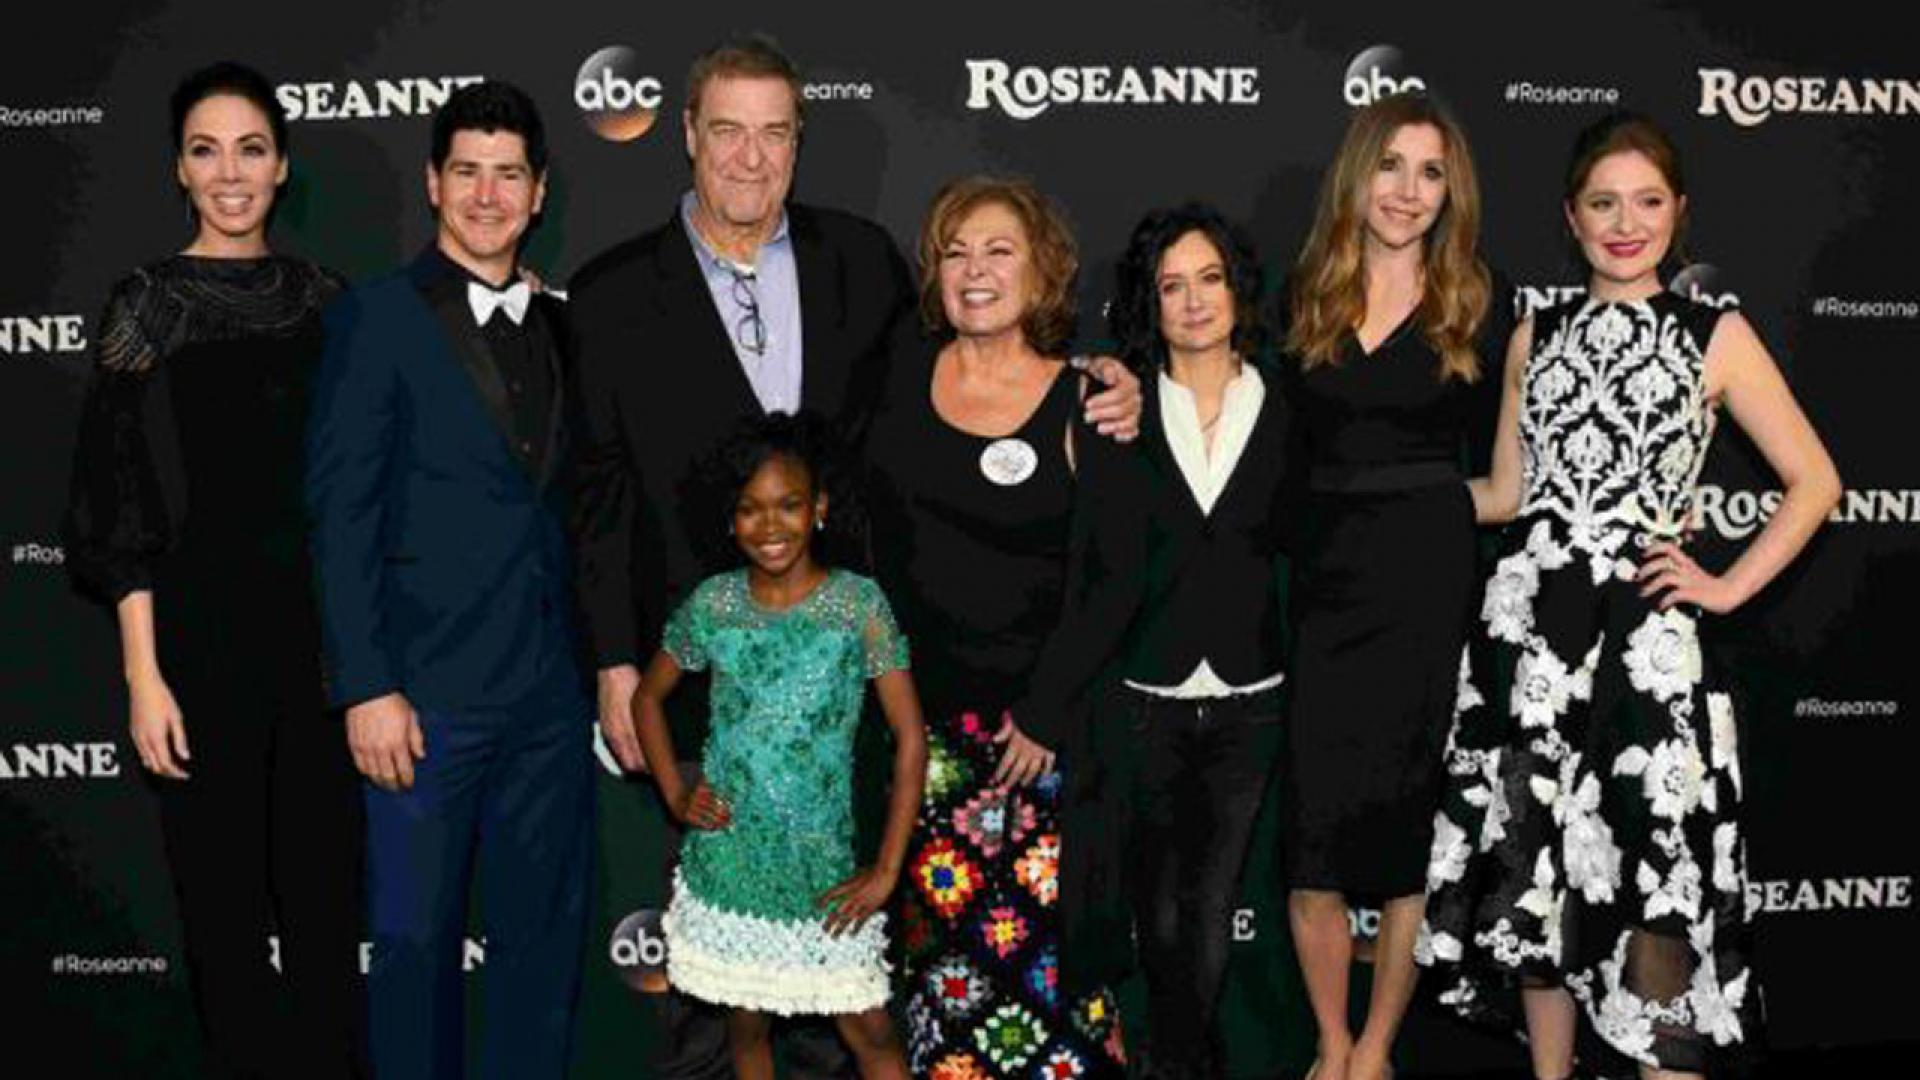 Roseanne Barr says she begged ABC not to cancel her show.